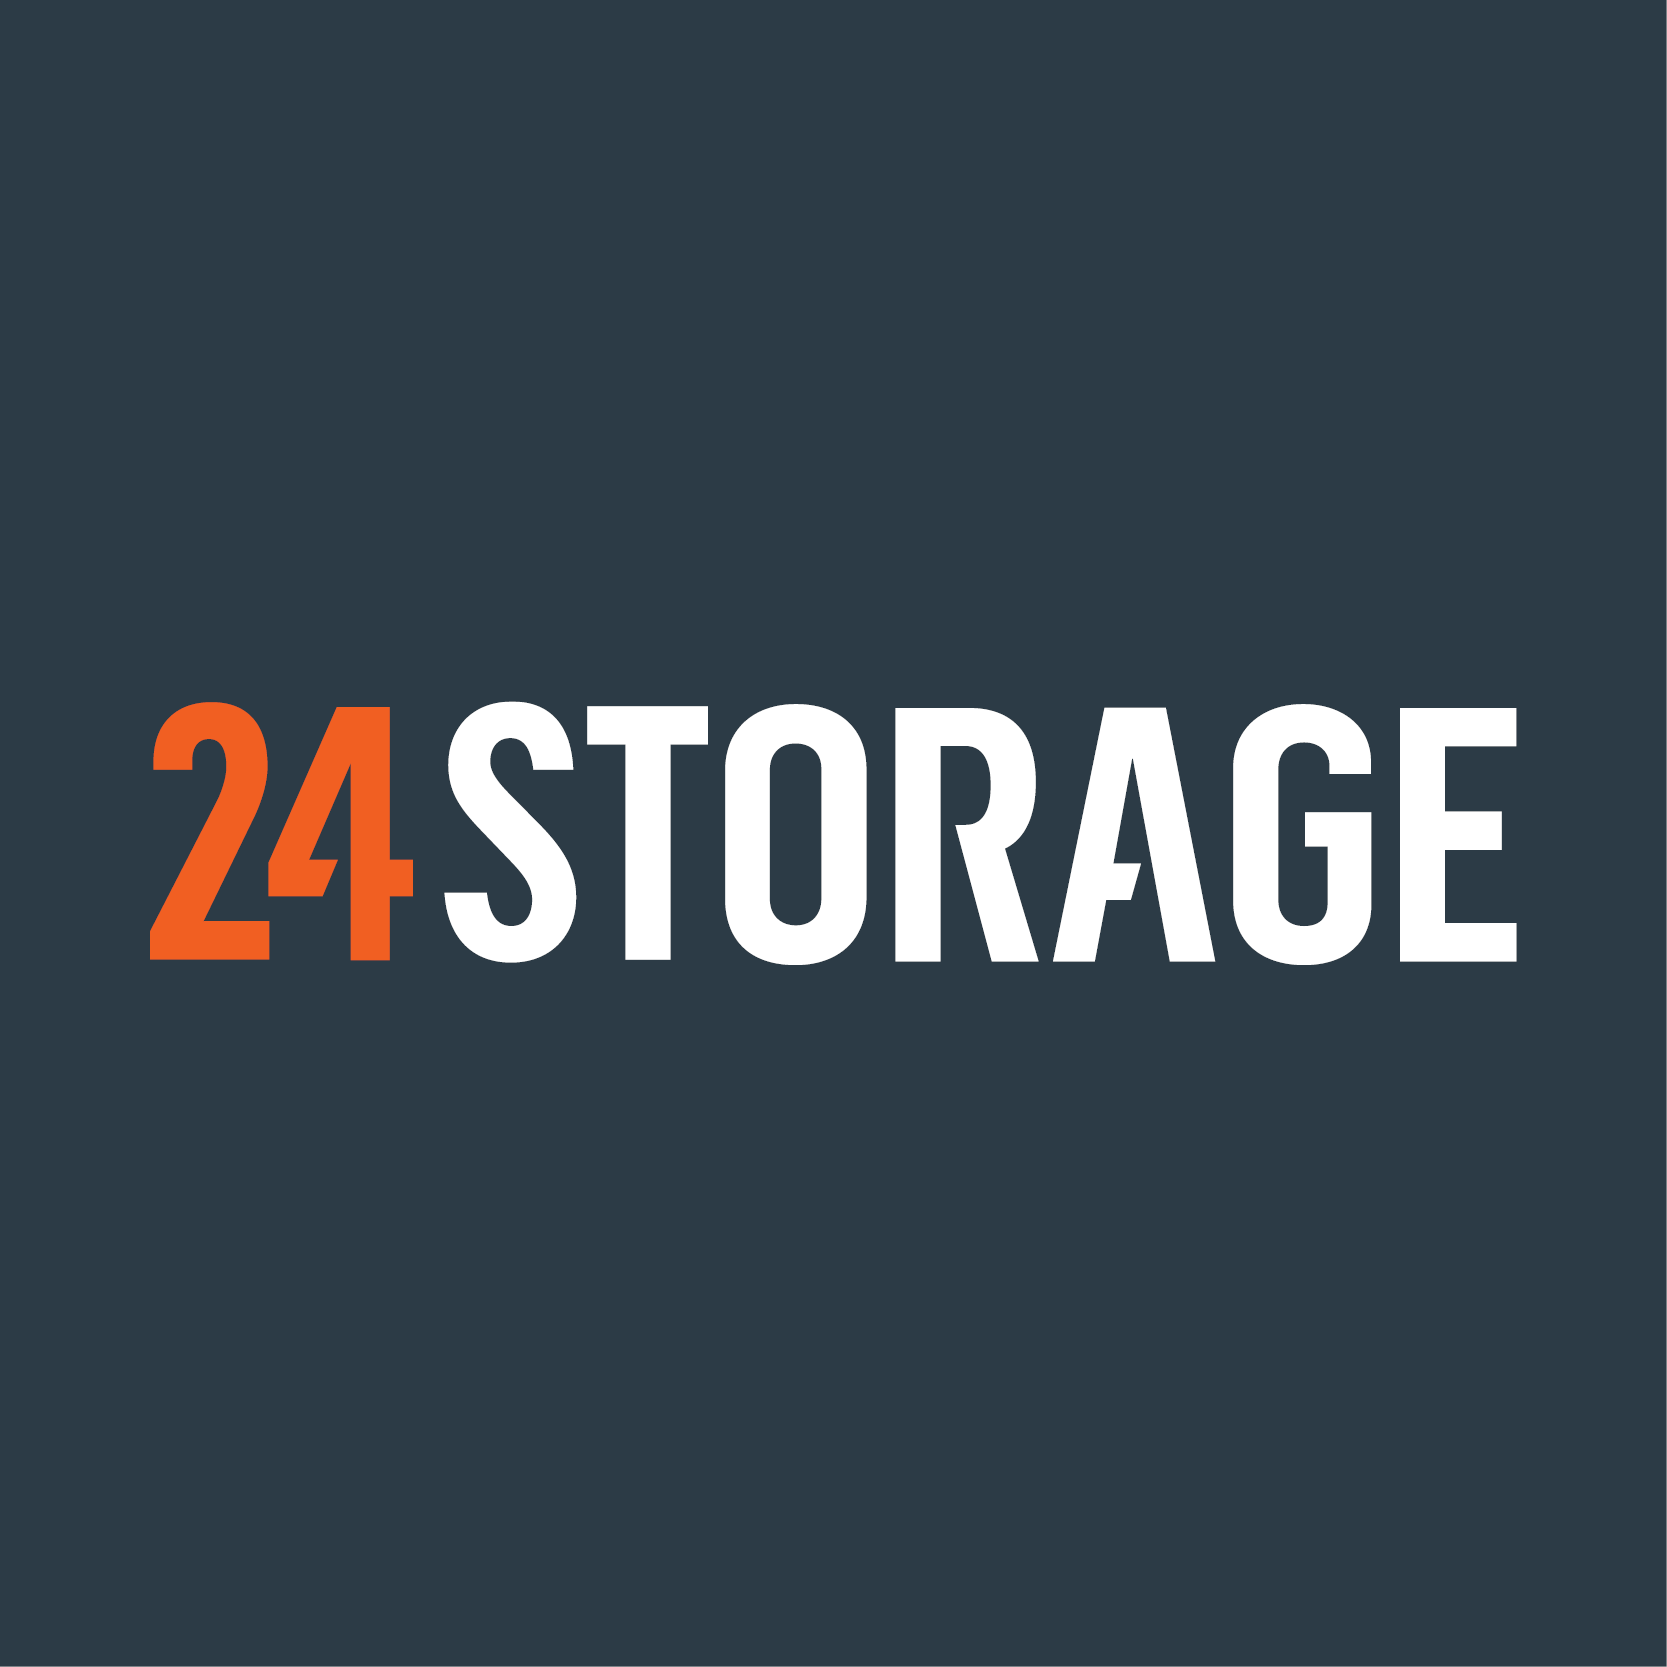 24Storage Orminge